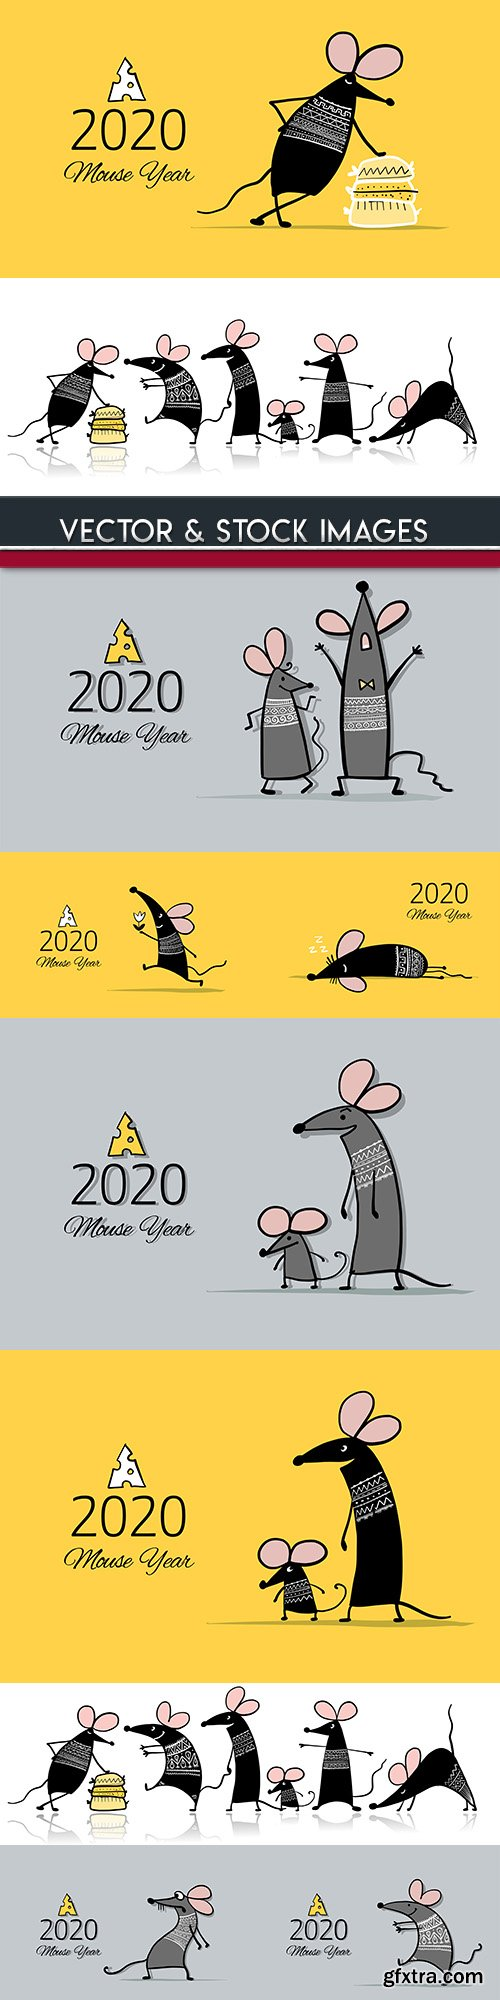 White rat symbol of New Year 2020 funny cartoon